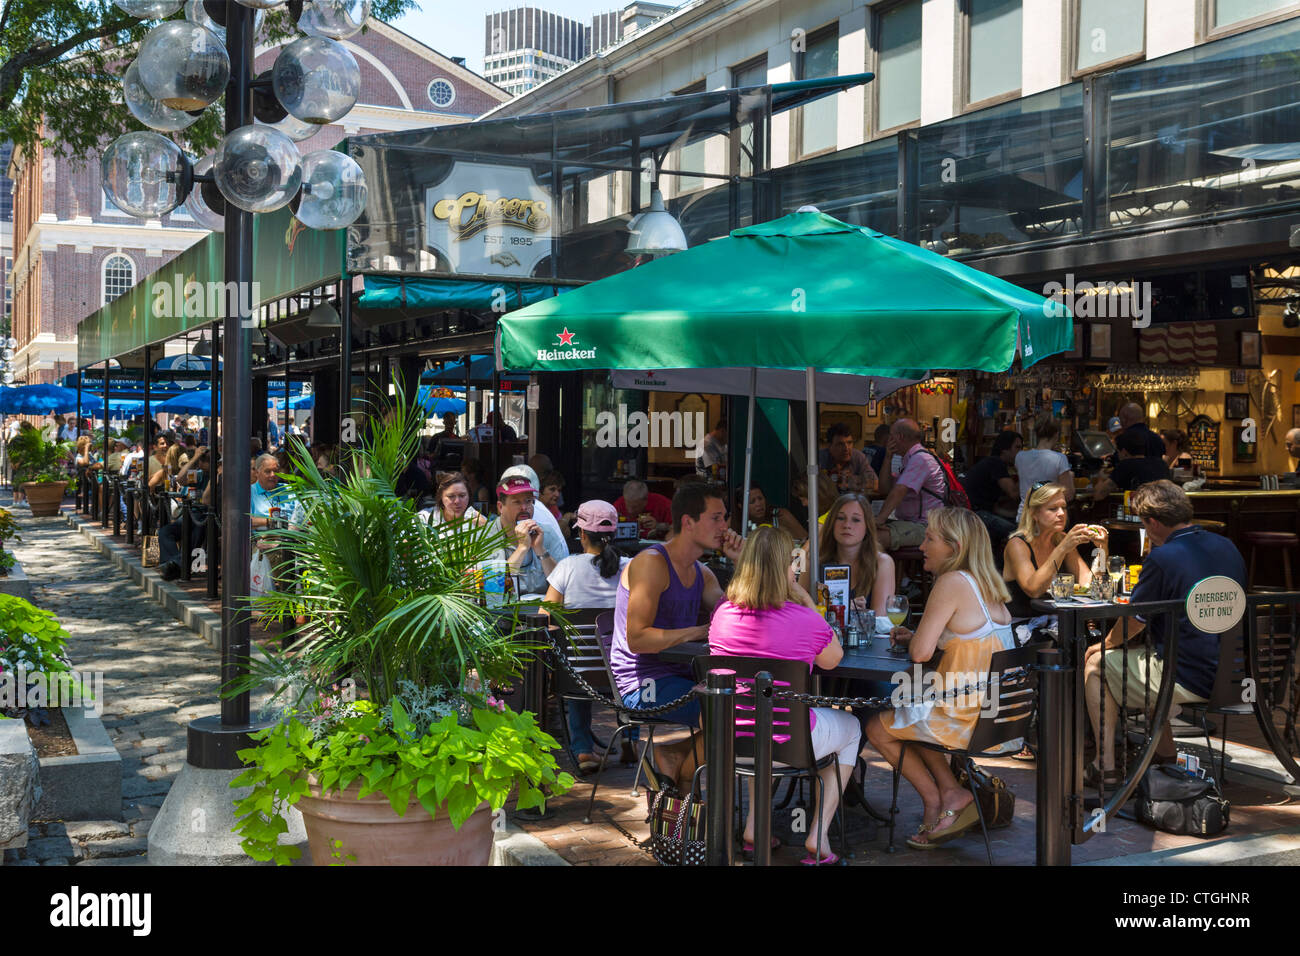 The terrace of Cheers bar, Quincy market in historic downtown Boston, Massachusetts, USA - Stock Image